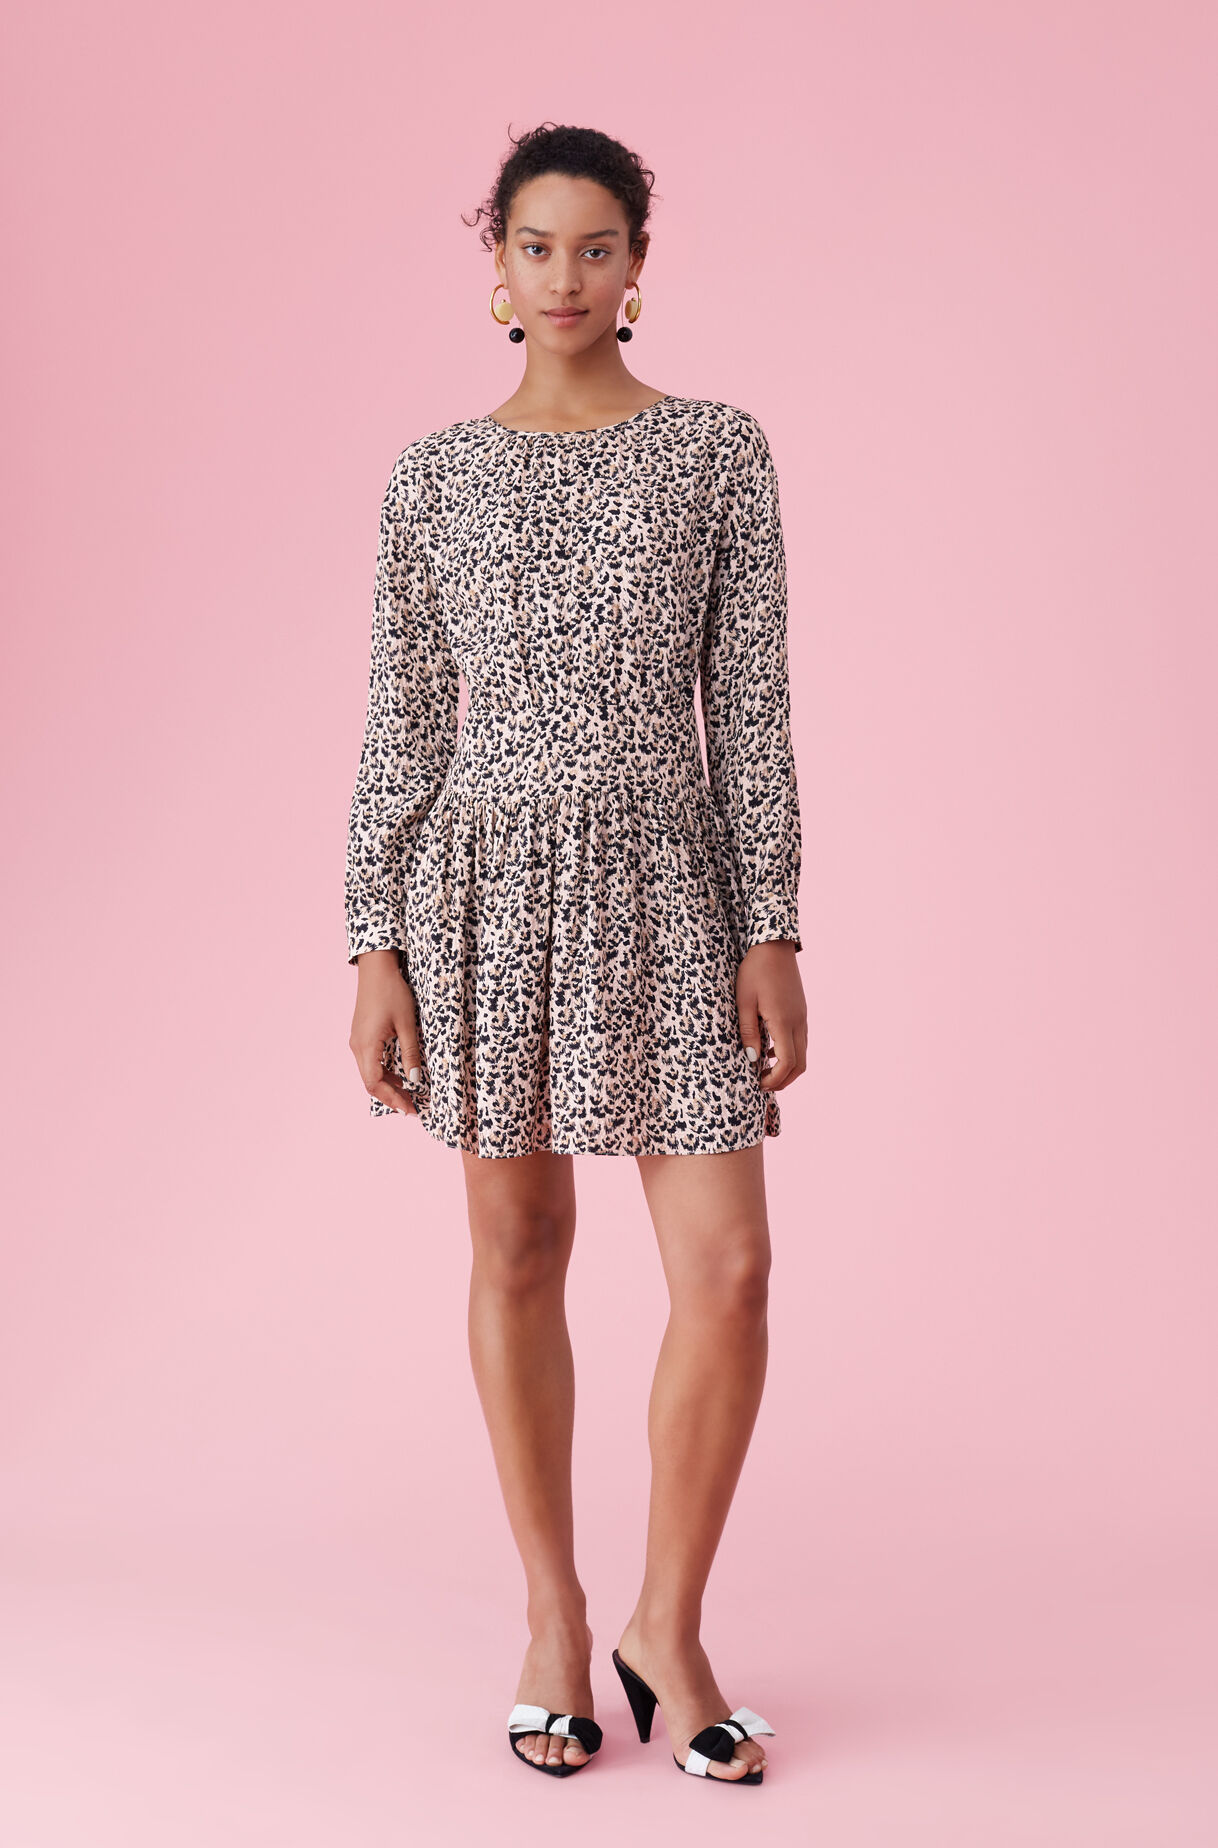 Leopard Print Silk Dress Rebecca Taylor